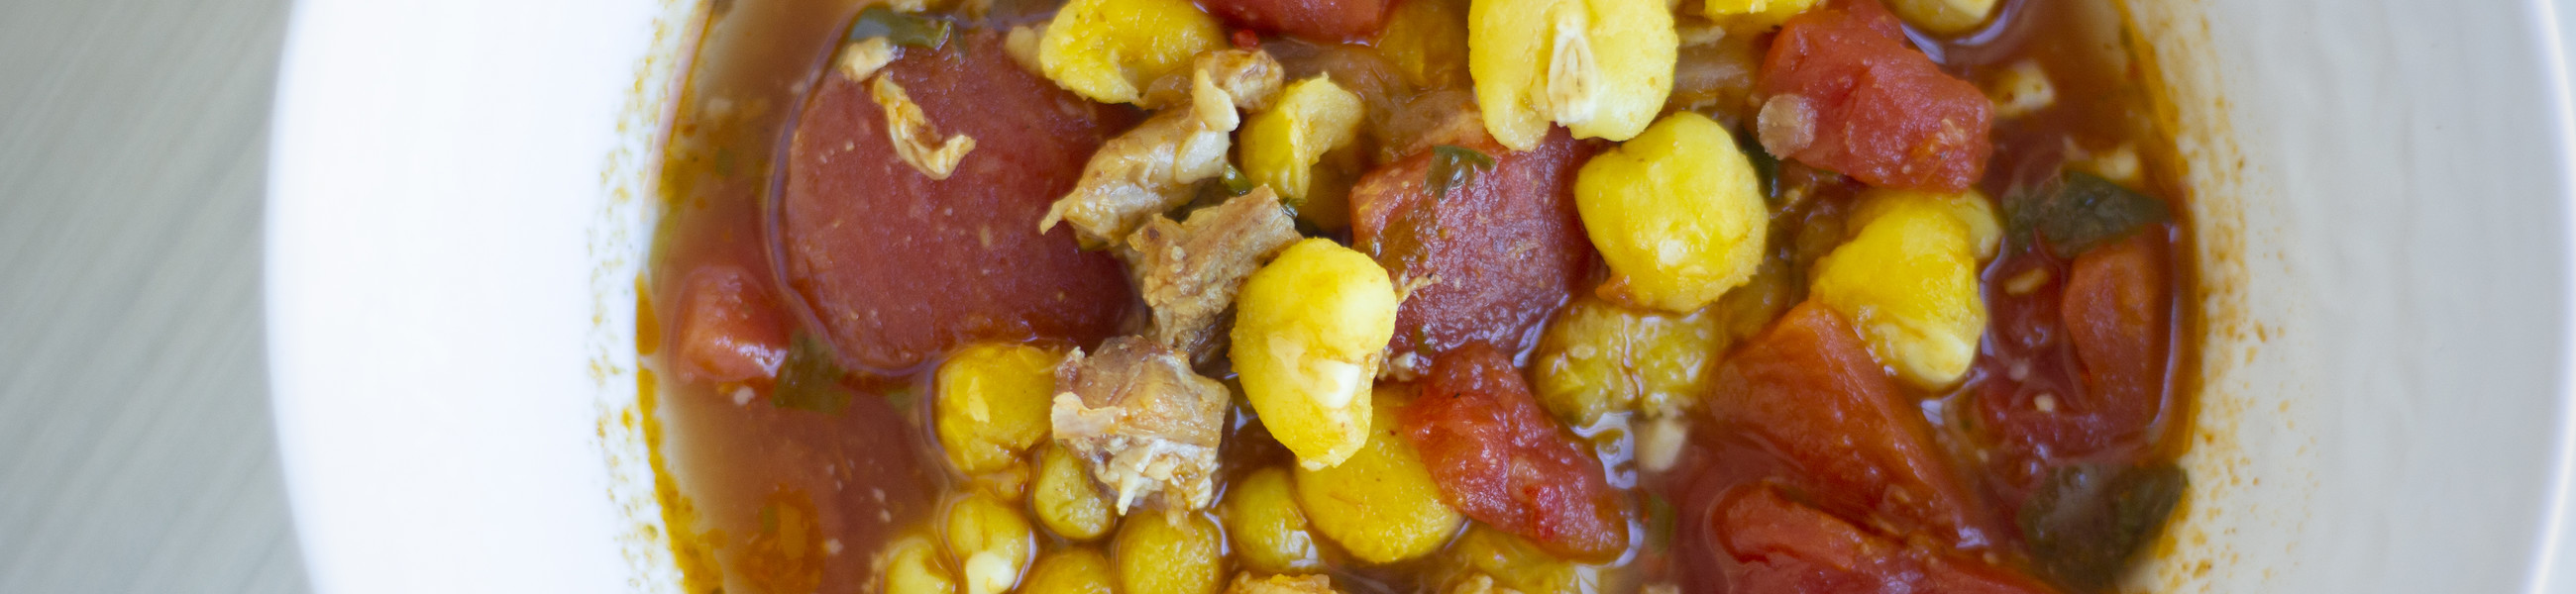 Soup with corn and tomato